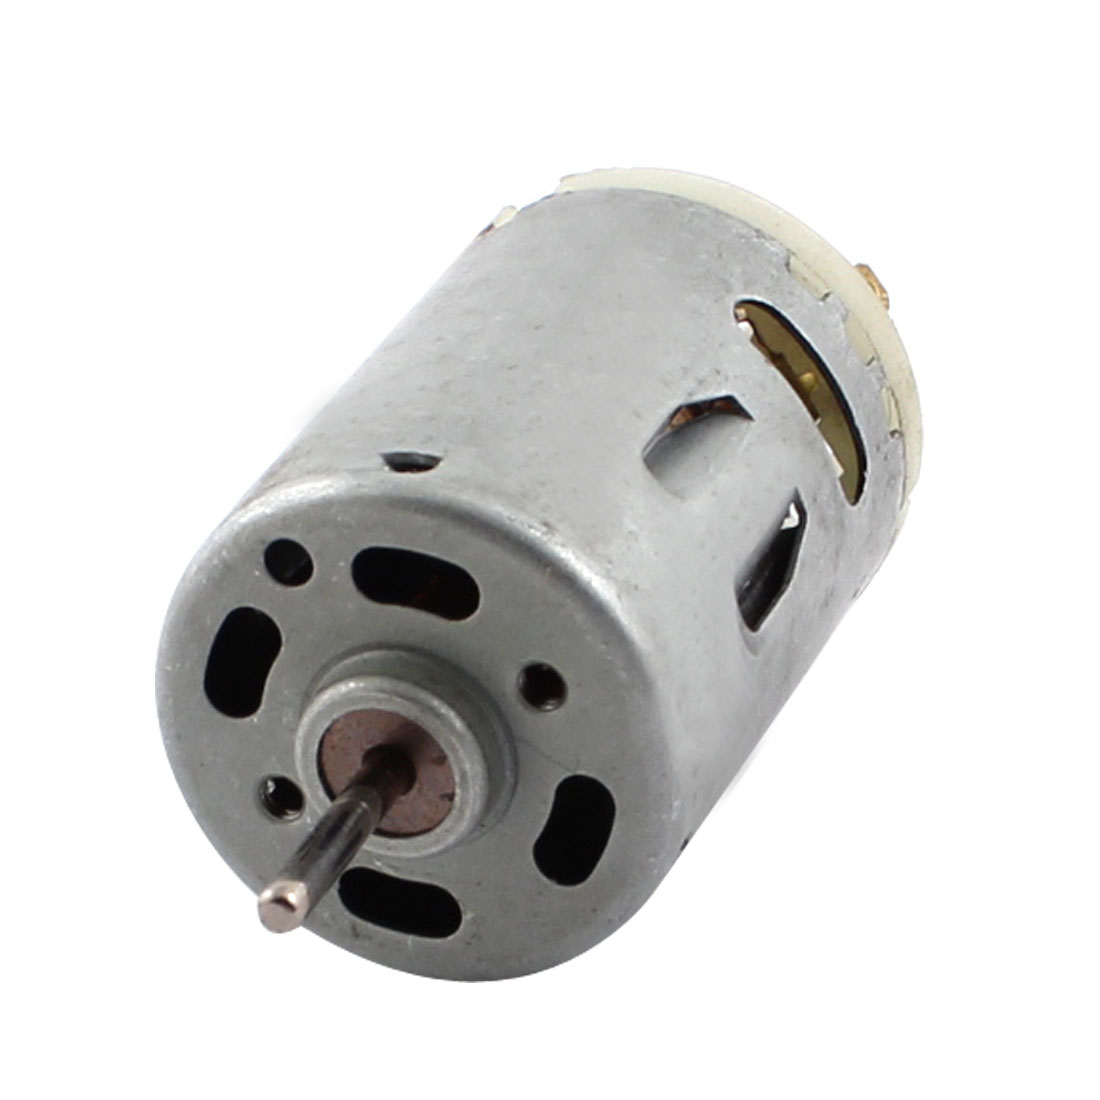 DC12V 500RPM Rotary Speed Output 3mm Dia Shaft High Torque Cylinder Shaped Electric Power Motor